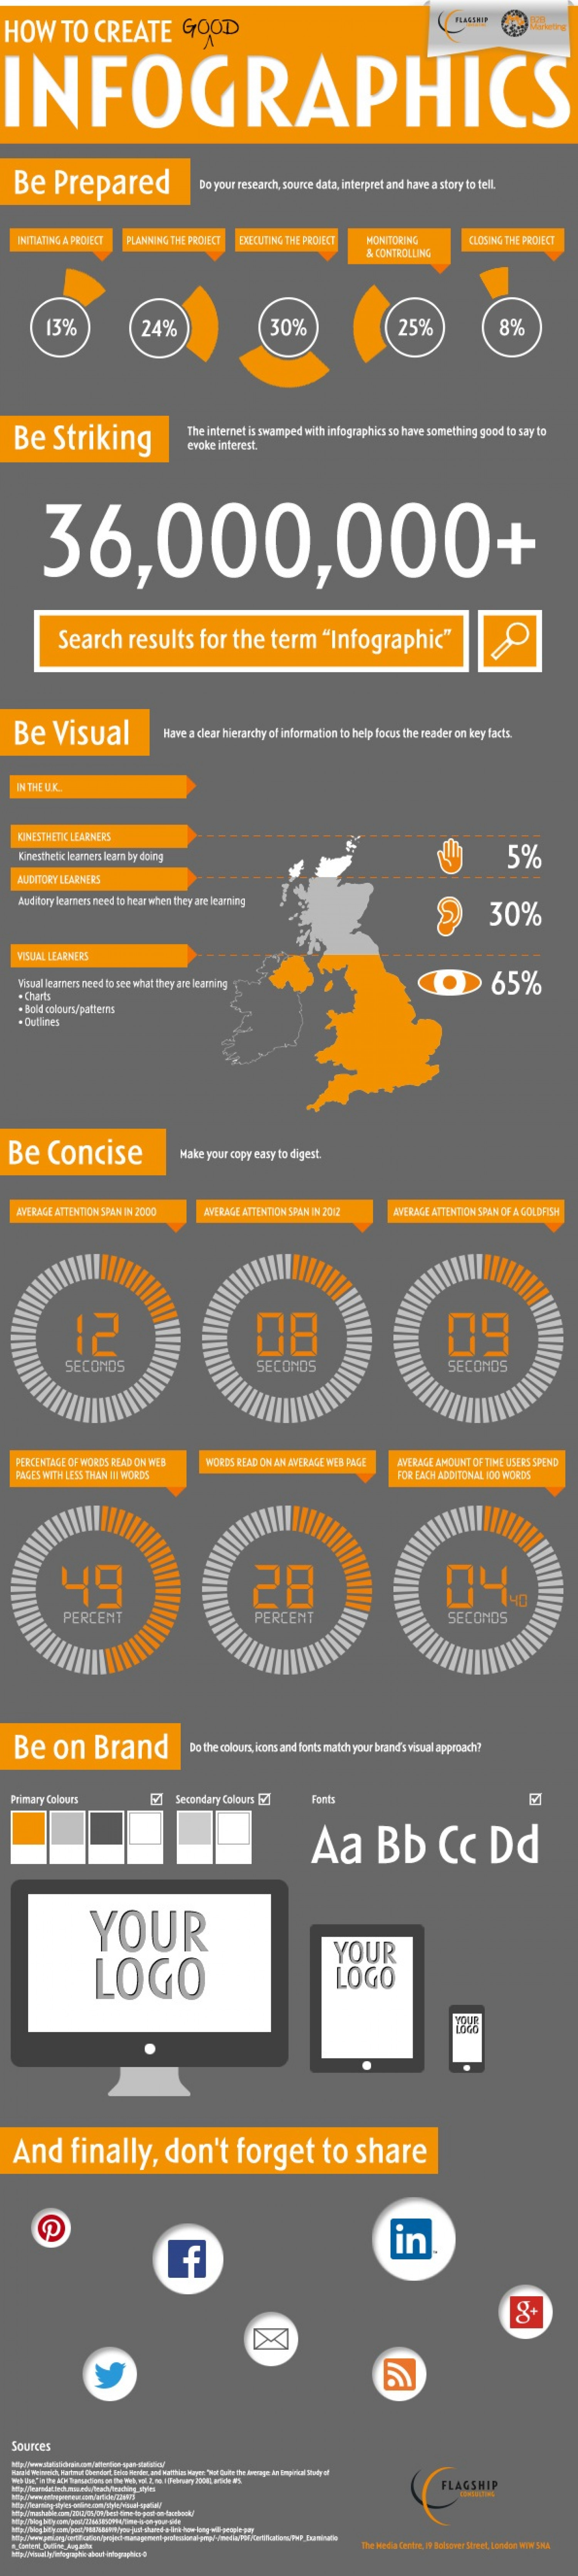 How to create a good infographic Infographic